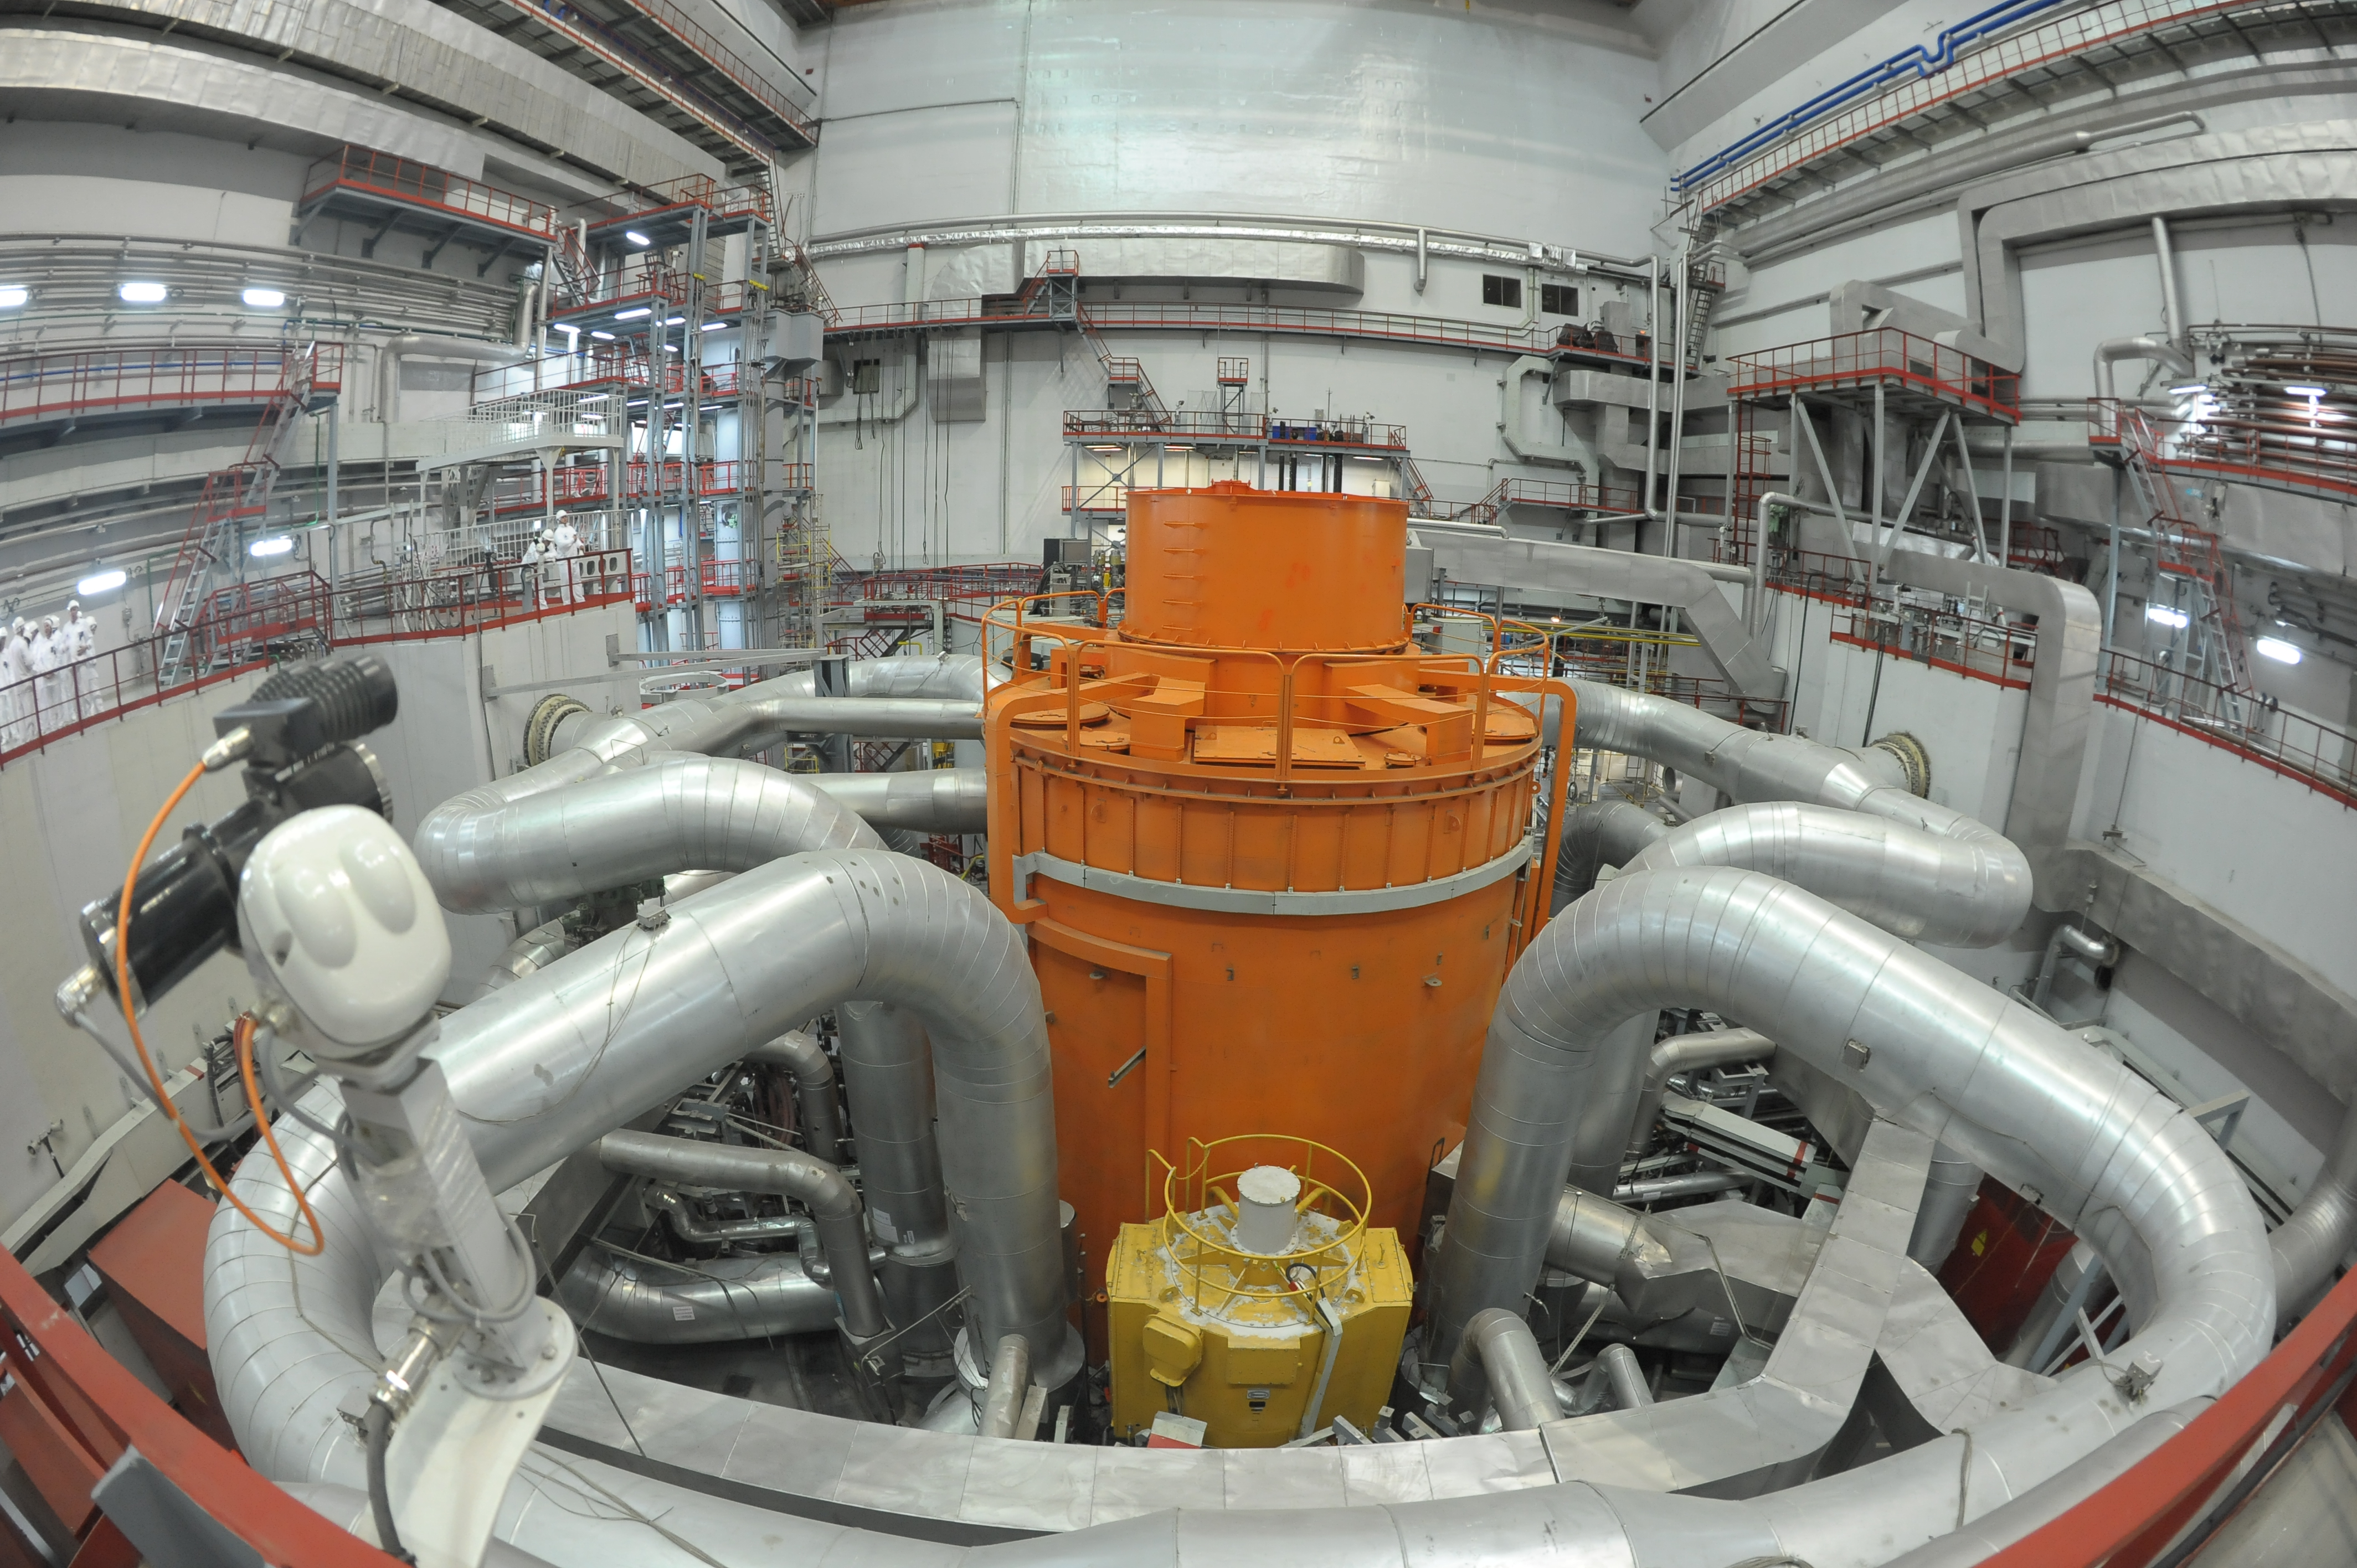 An interior view of the core of the Russian Fast Breeder Reactor on June 27, 2017 in Zarechny, Svedlovsk Oblast, Russia.